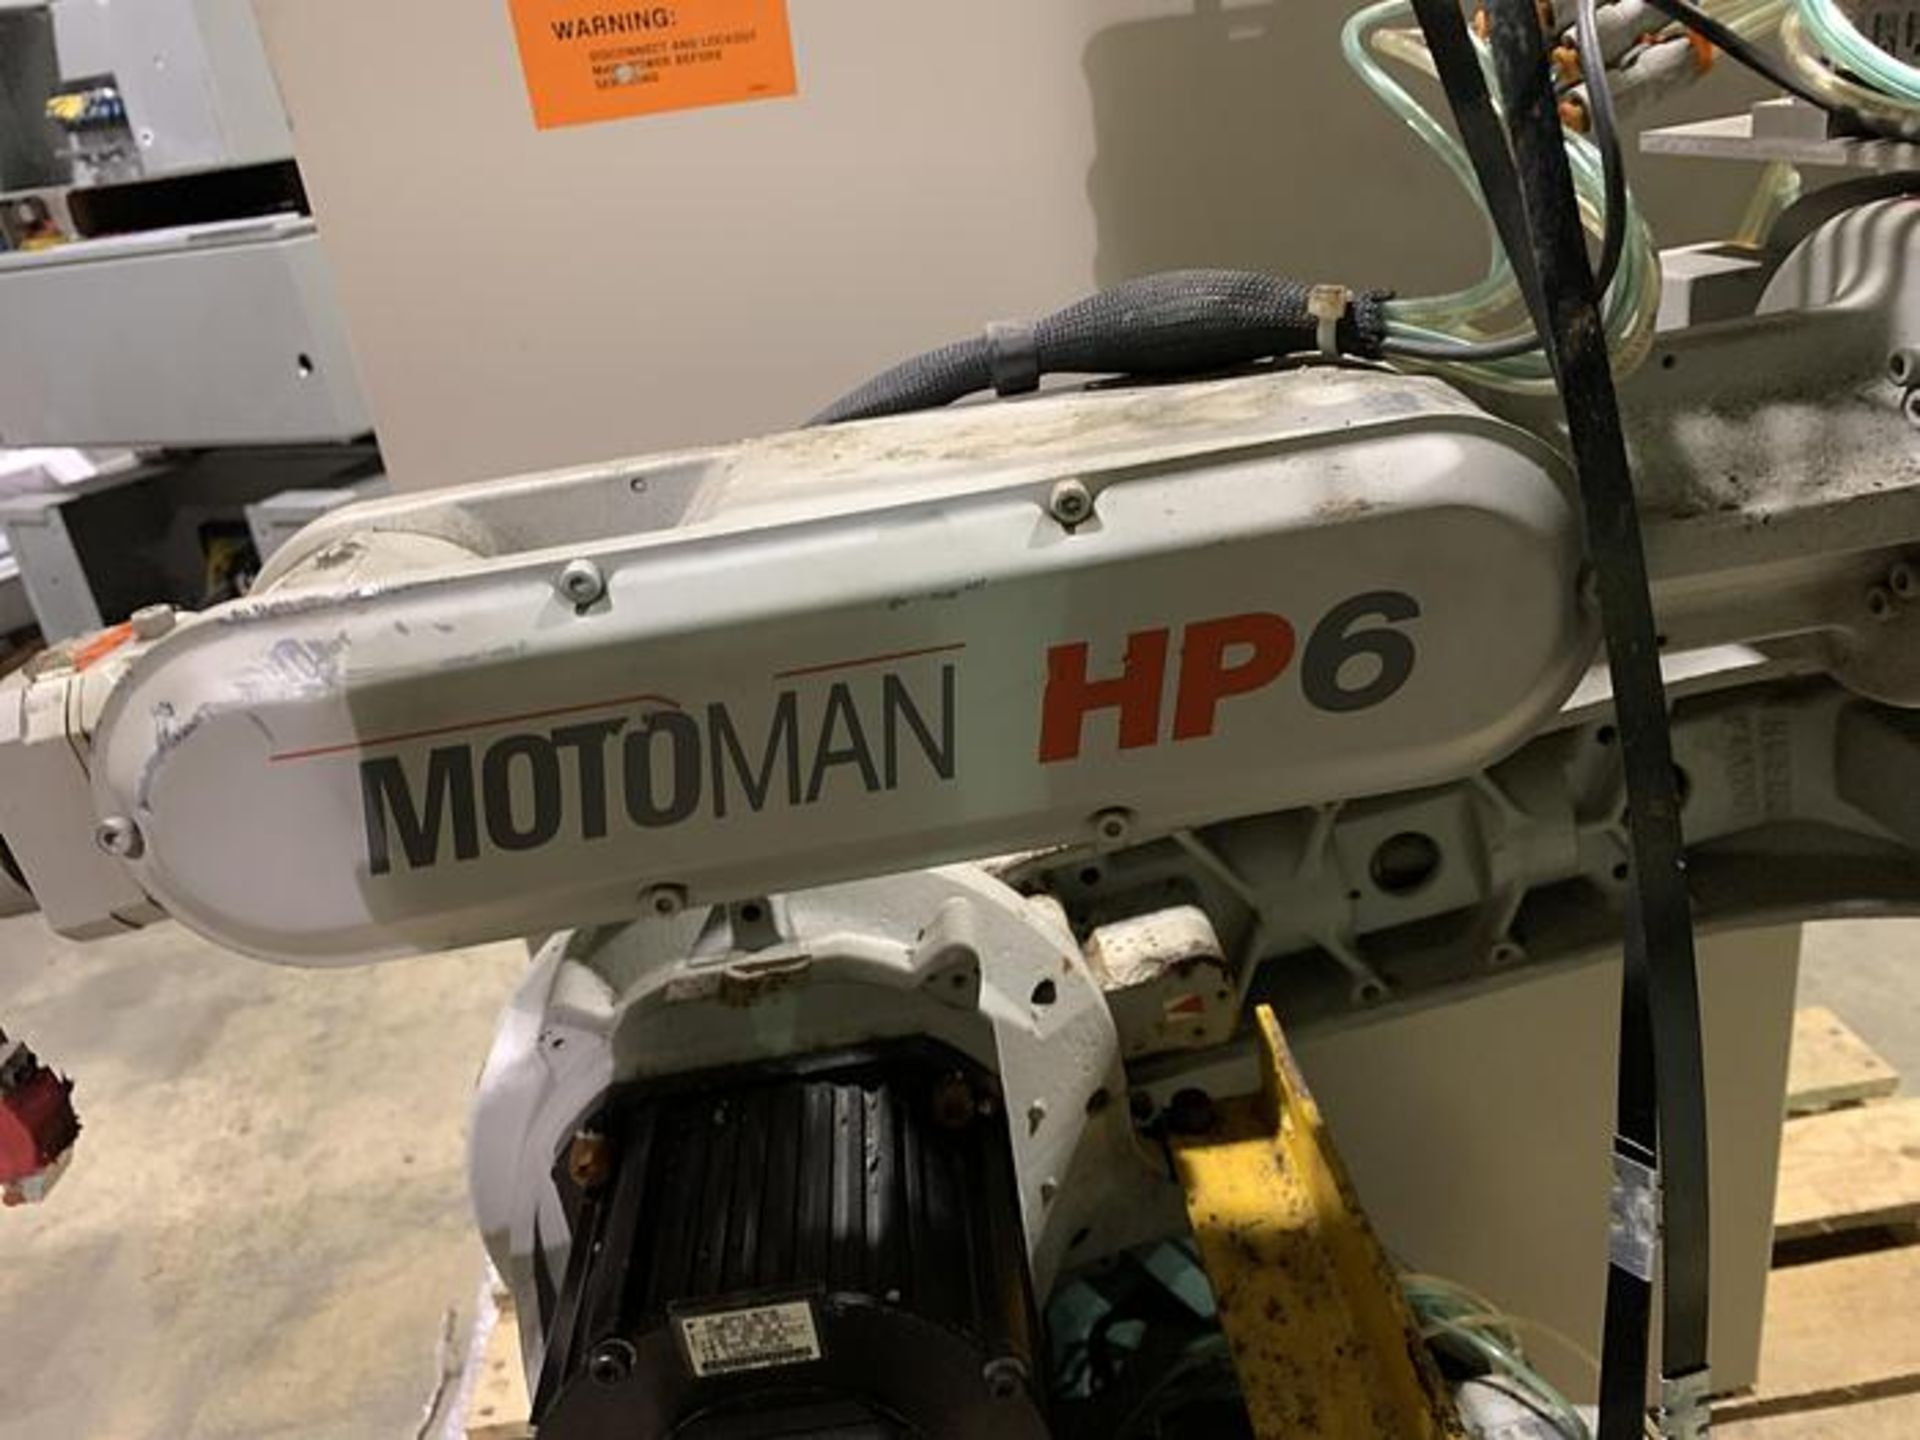 MOTOMAN ROBOT HP6 6KG X 1378 MM REACH NX100 CONTROLLER, CABLES & TEACH, SN S4M230-1-6, YEAR 04/2005 - Image 3 of 3